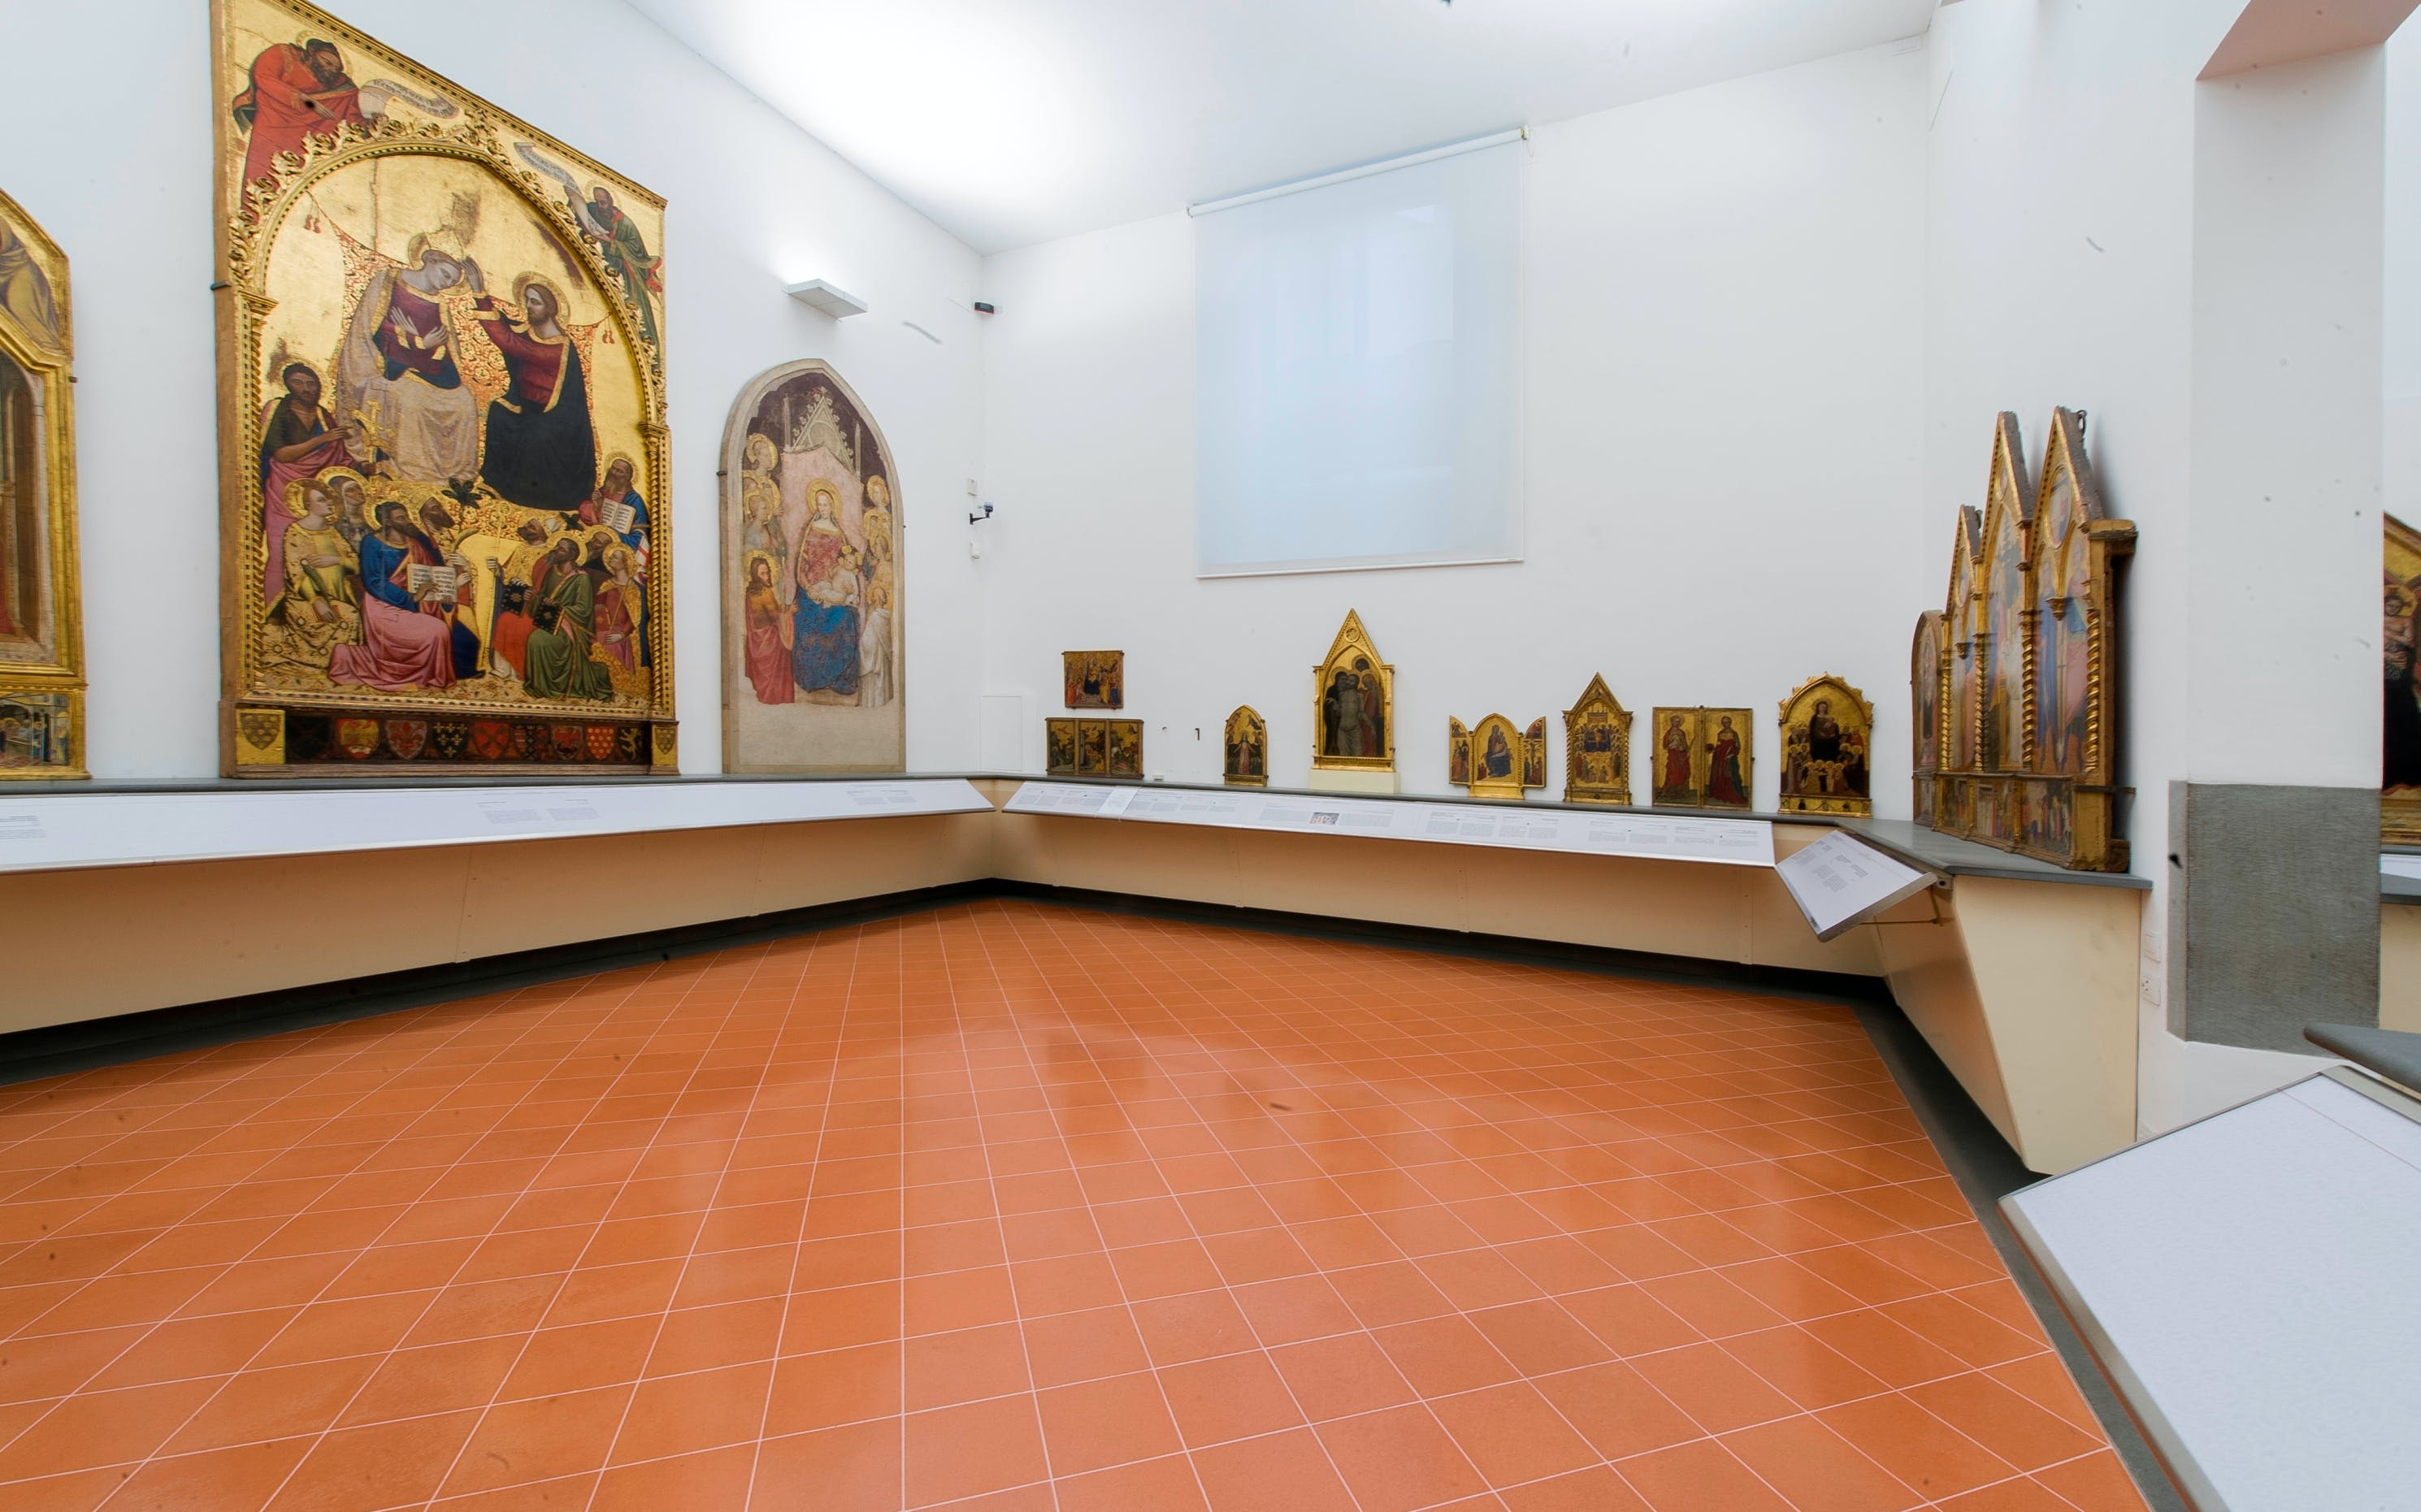 accademia gallery guided tour with skip the line tickets-3